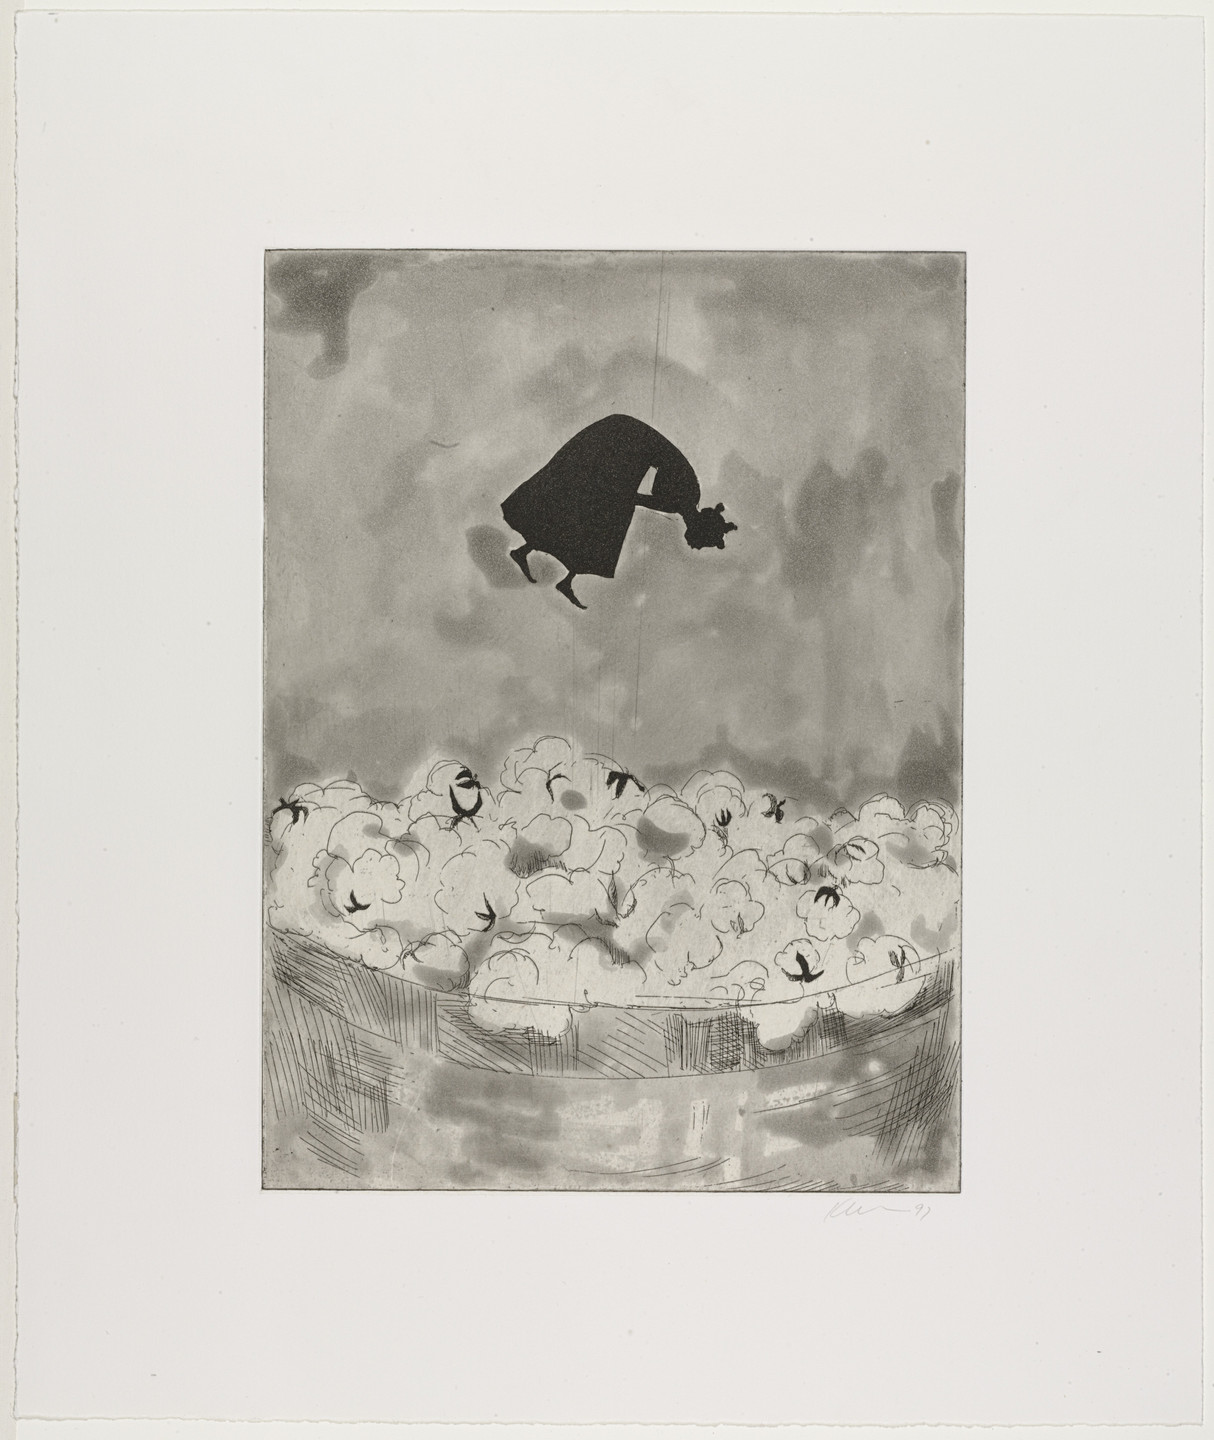 Kara Walker. Cotton. 1997